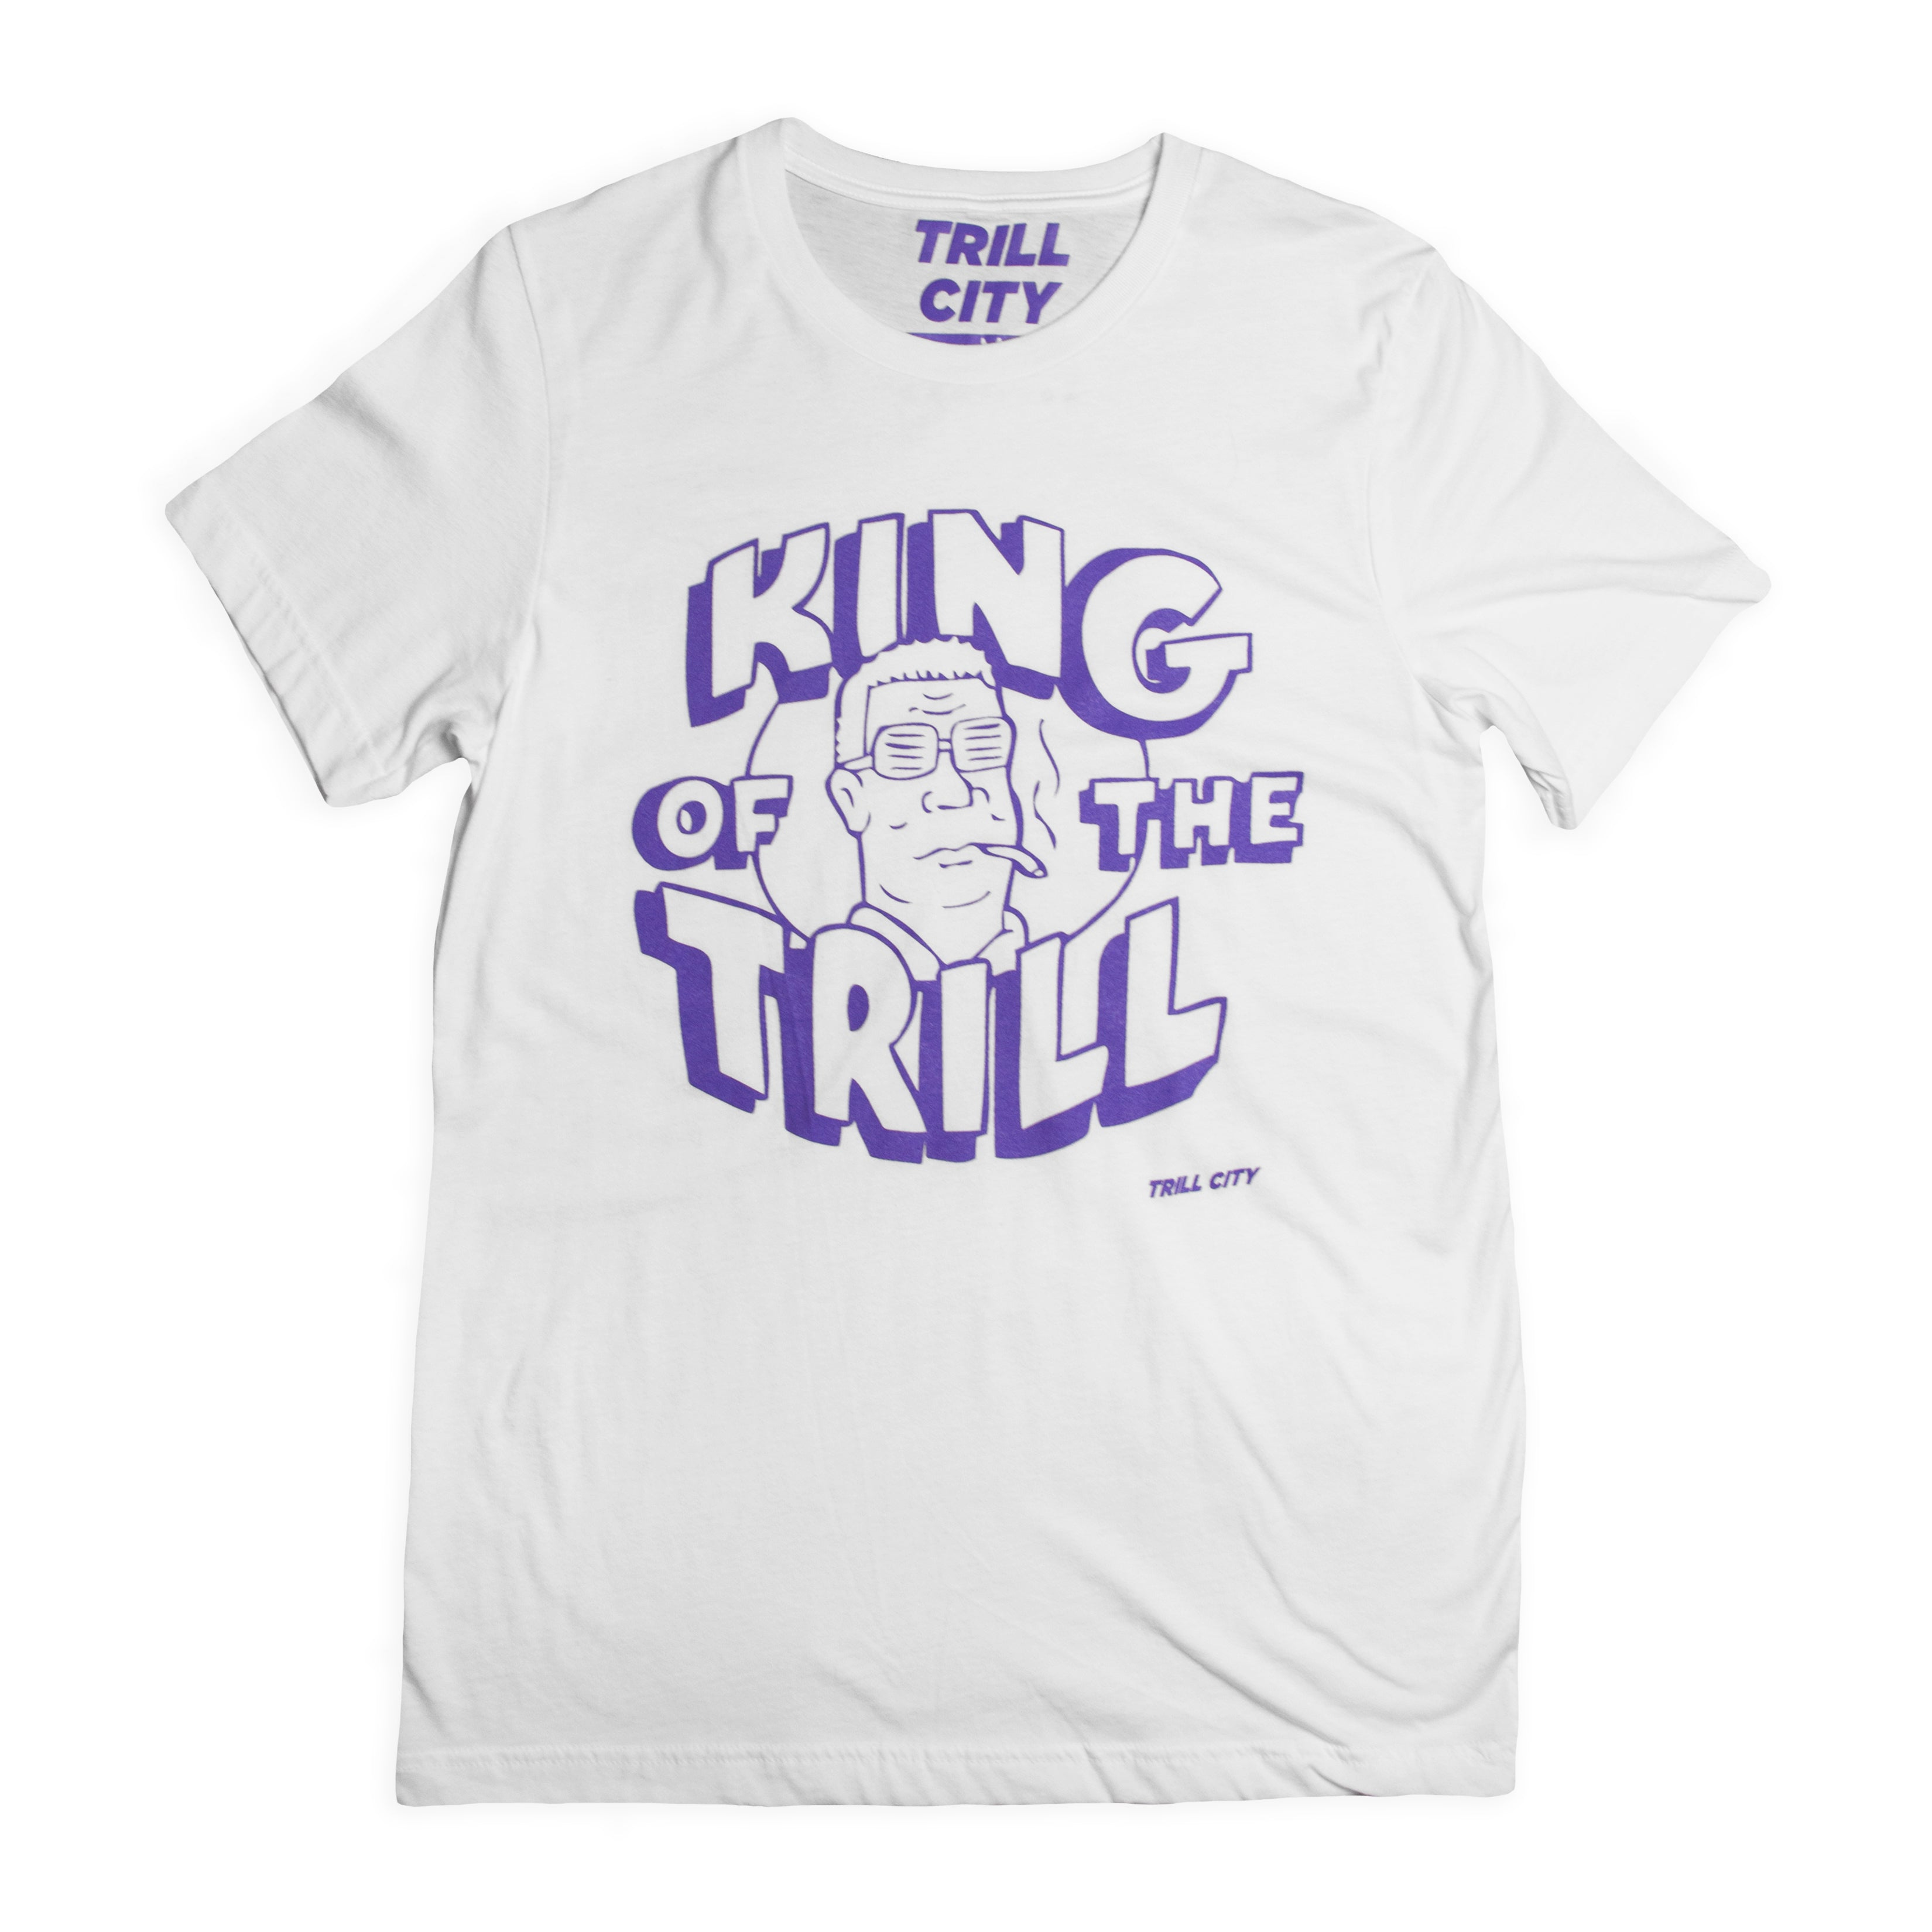 TRILL CITY - King of the Trill